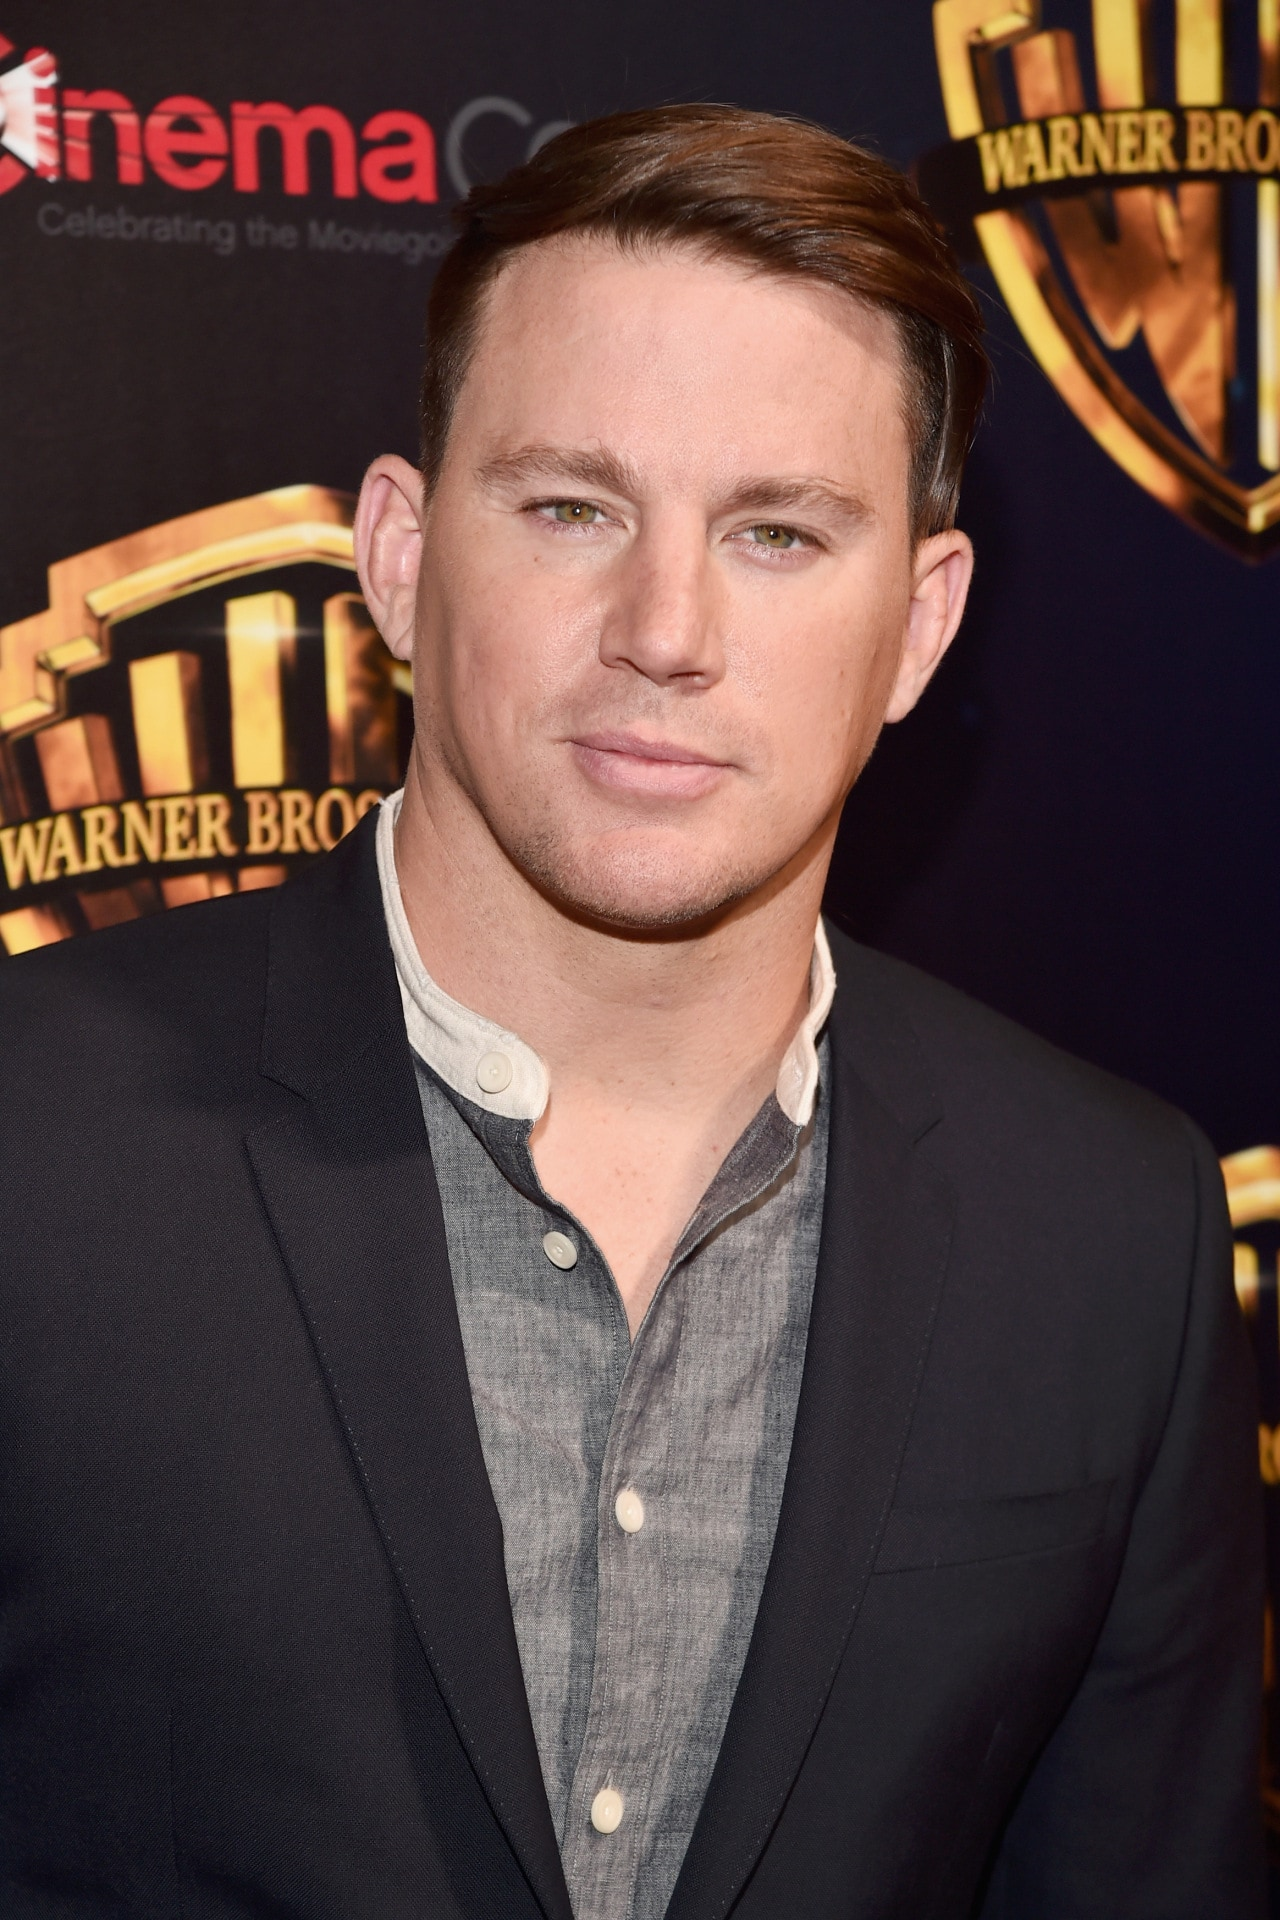 Channing Tatum is reportedly dating Jessie J - Vogue Australia Channing Tatum